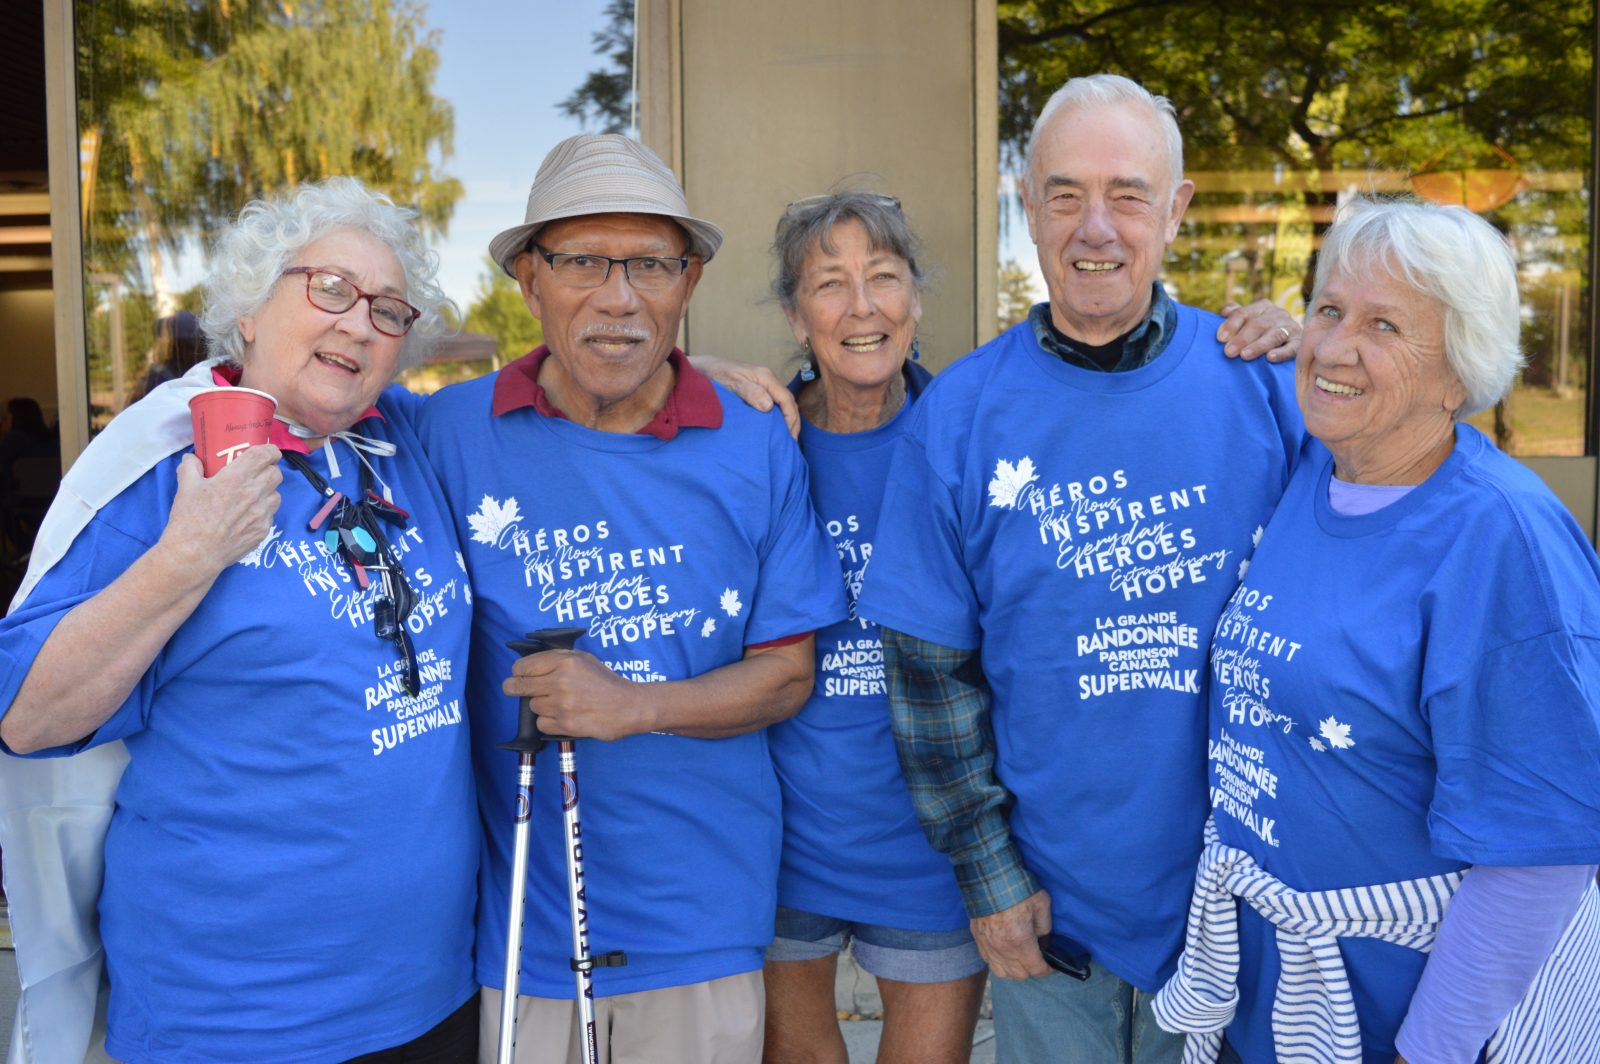 WEEKEND EVENT: Parkinson Superwalk expecting 200 participants